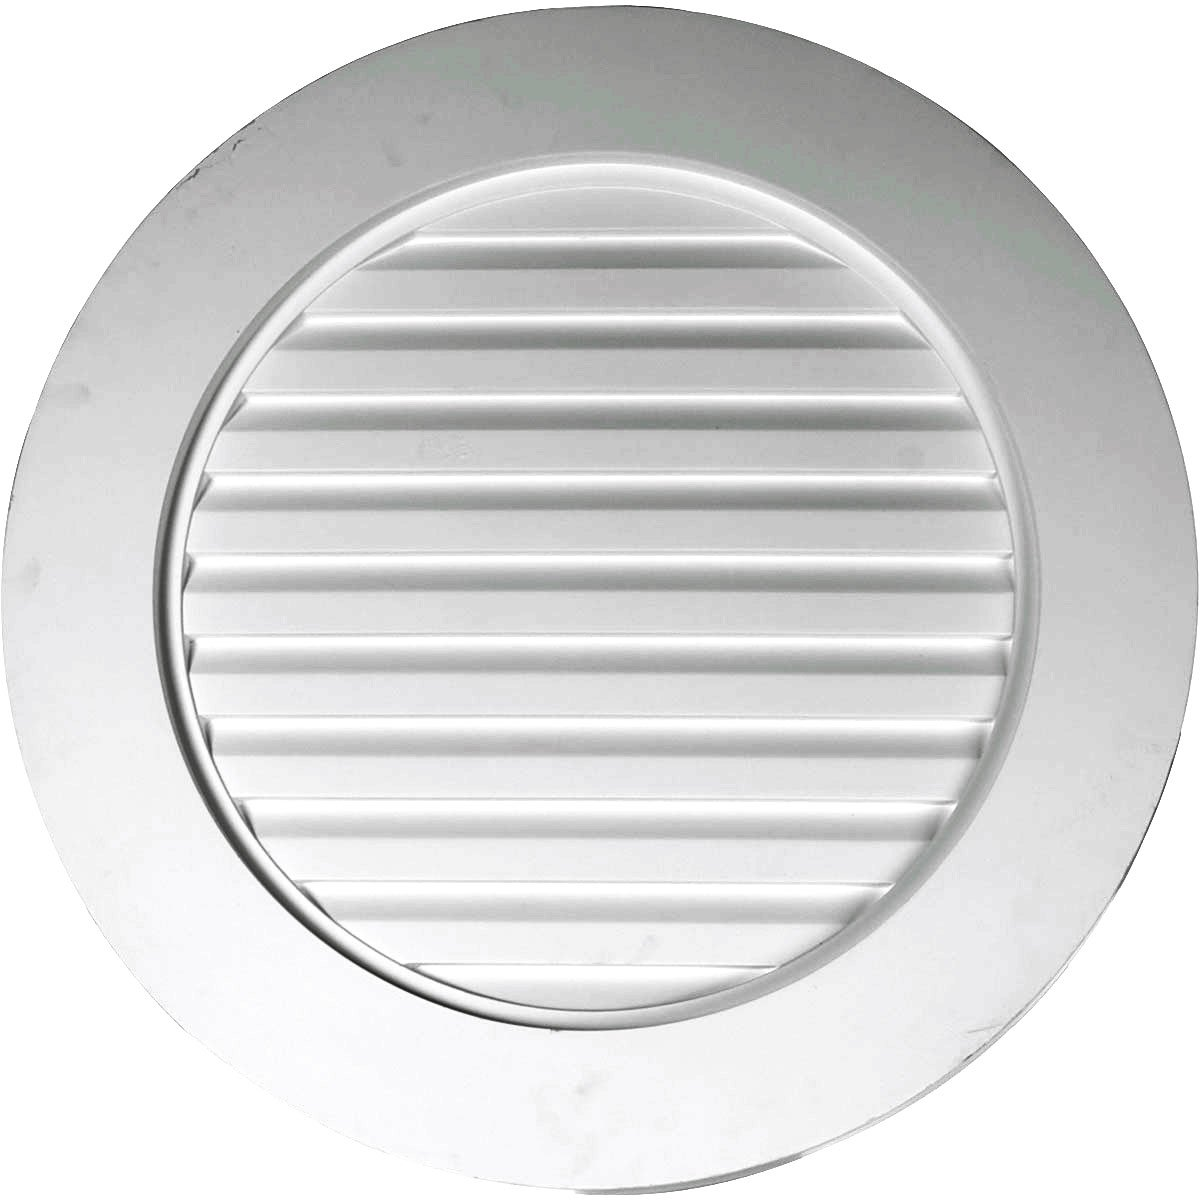 Functional Ekena Millwork GVRO24F 24-Inch W x 24-Inch H x 1 5//8-Inch P Round Gable Vent Louver